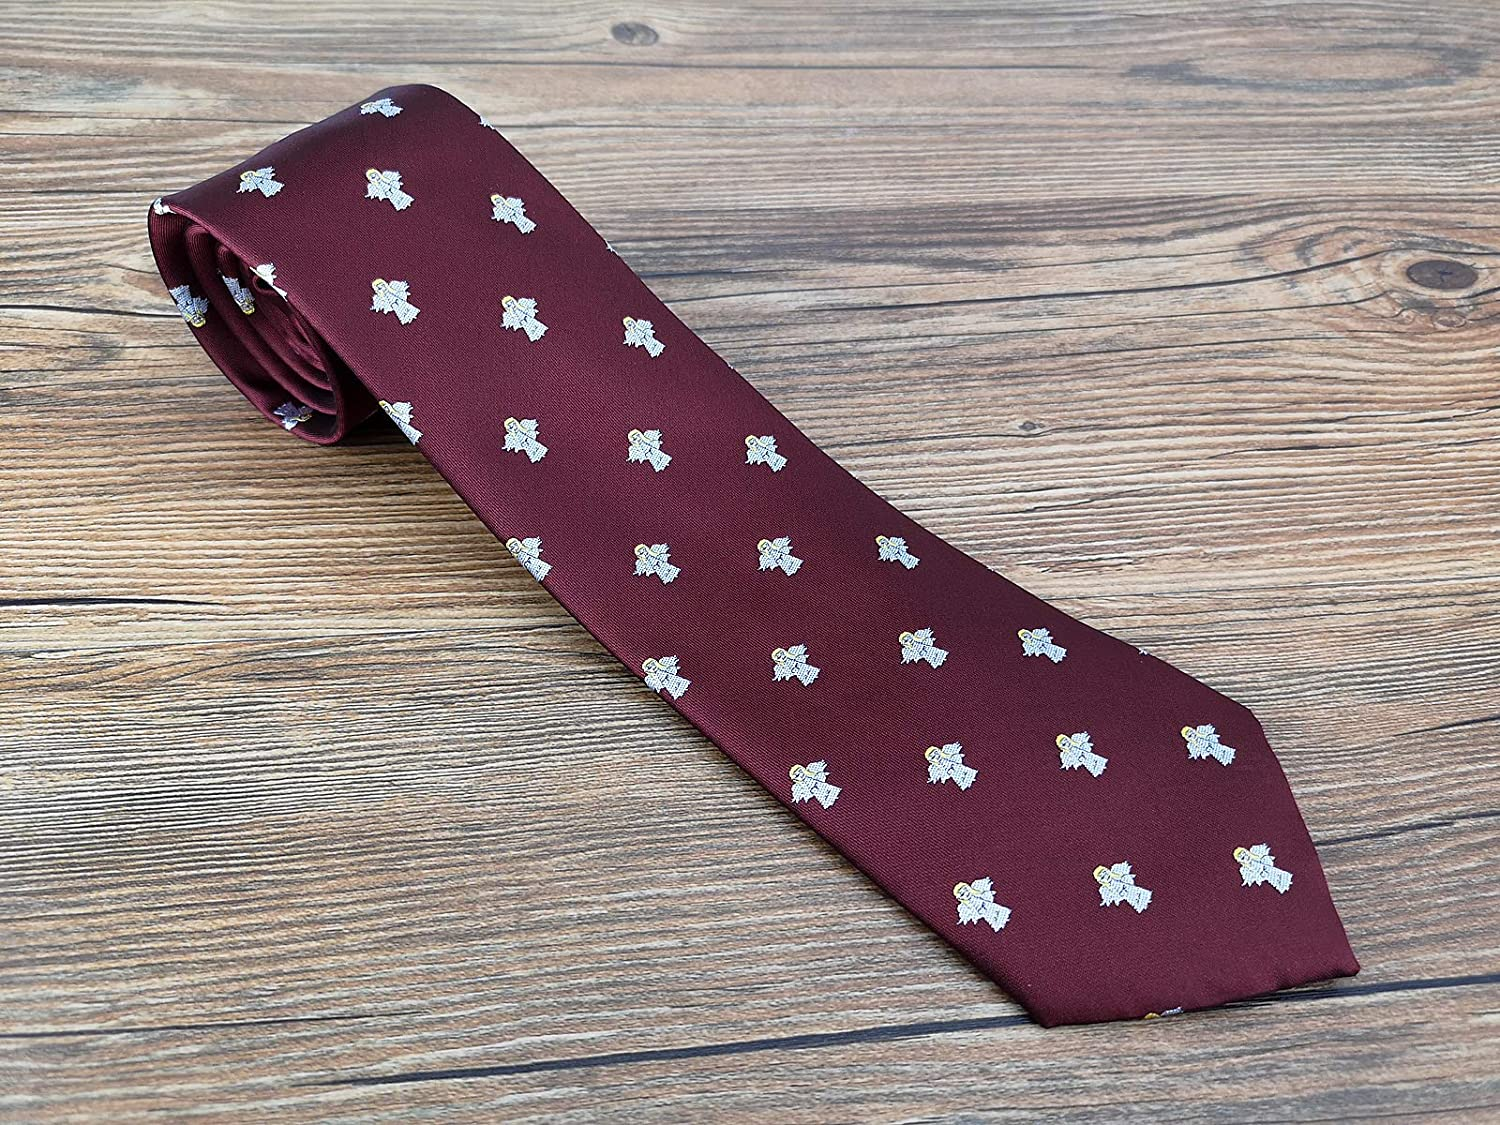 0360baf97cad KOOELLE Christmas Ties for Mens Novelty Patern Jacquard Unique Necktie -  Burgundy Series: Amazon.co.uk: Clothing